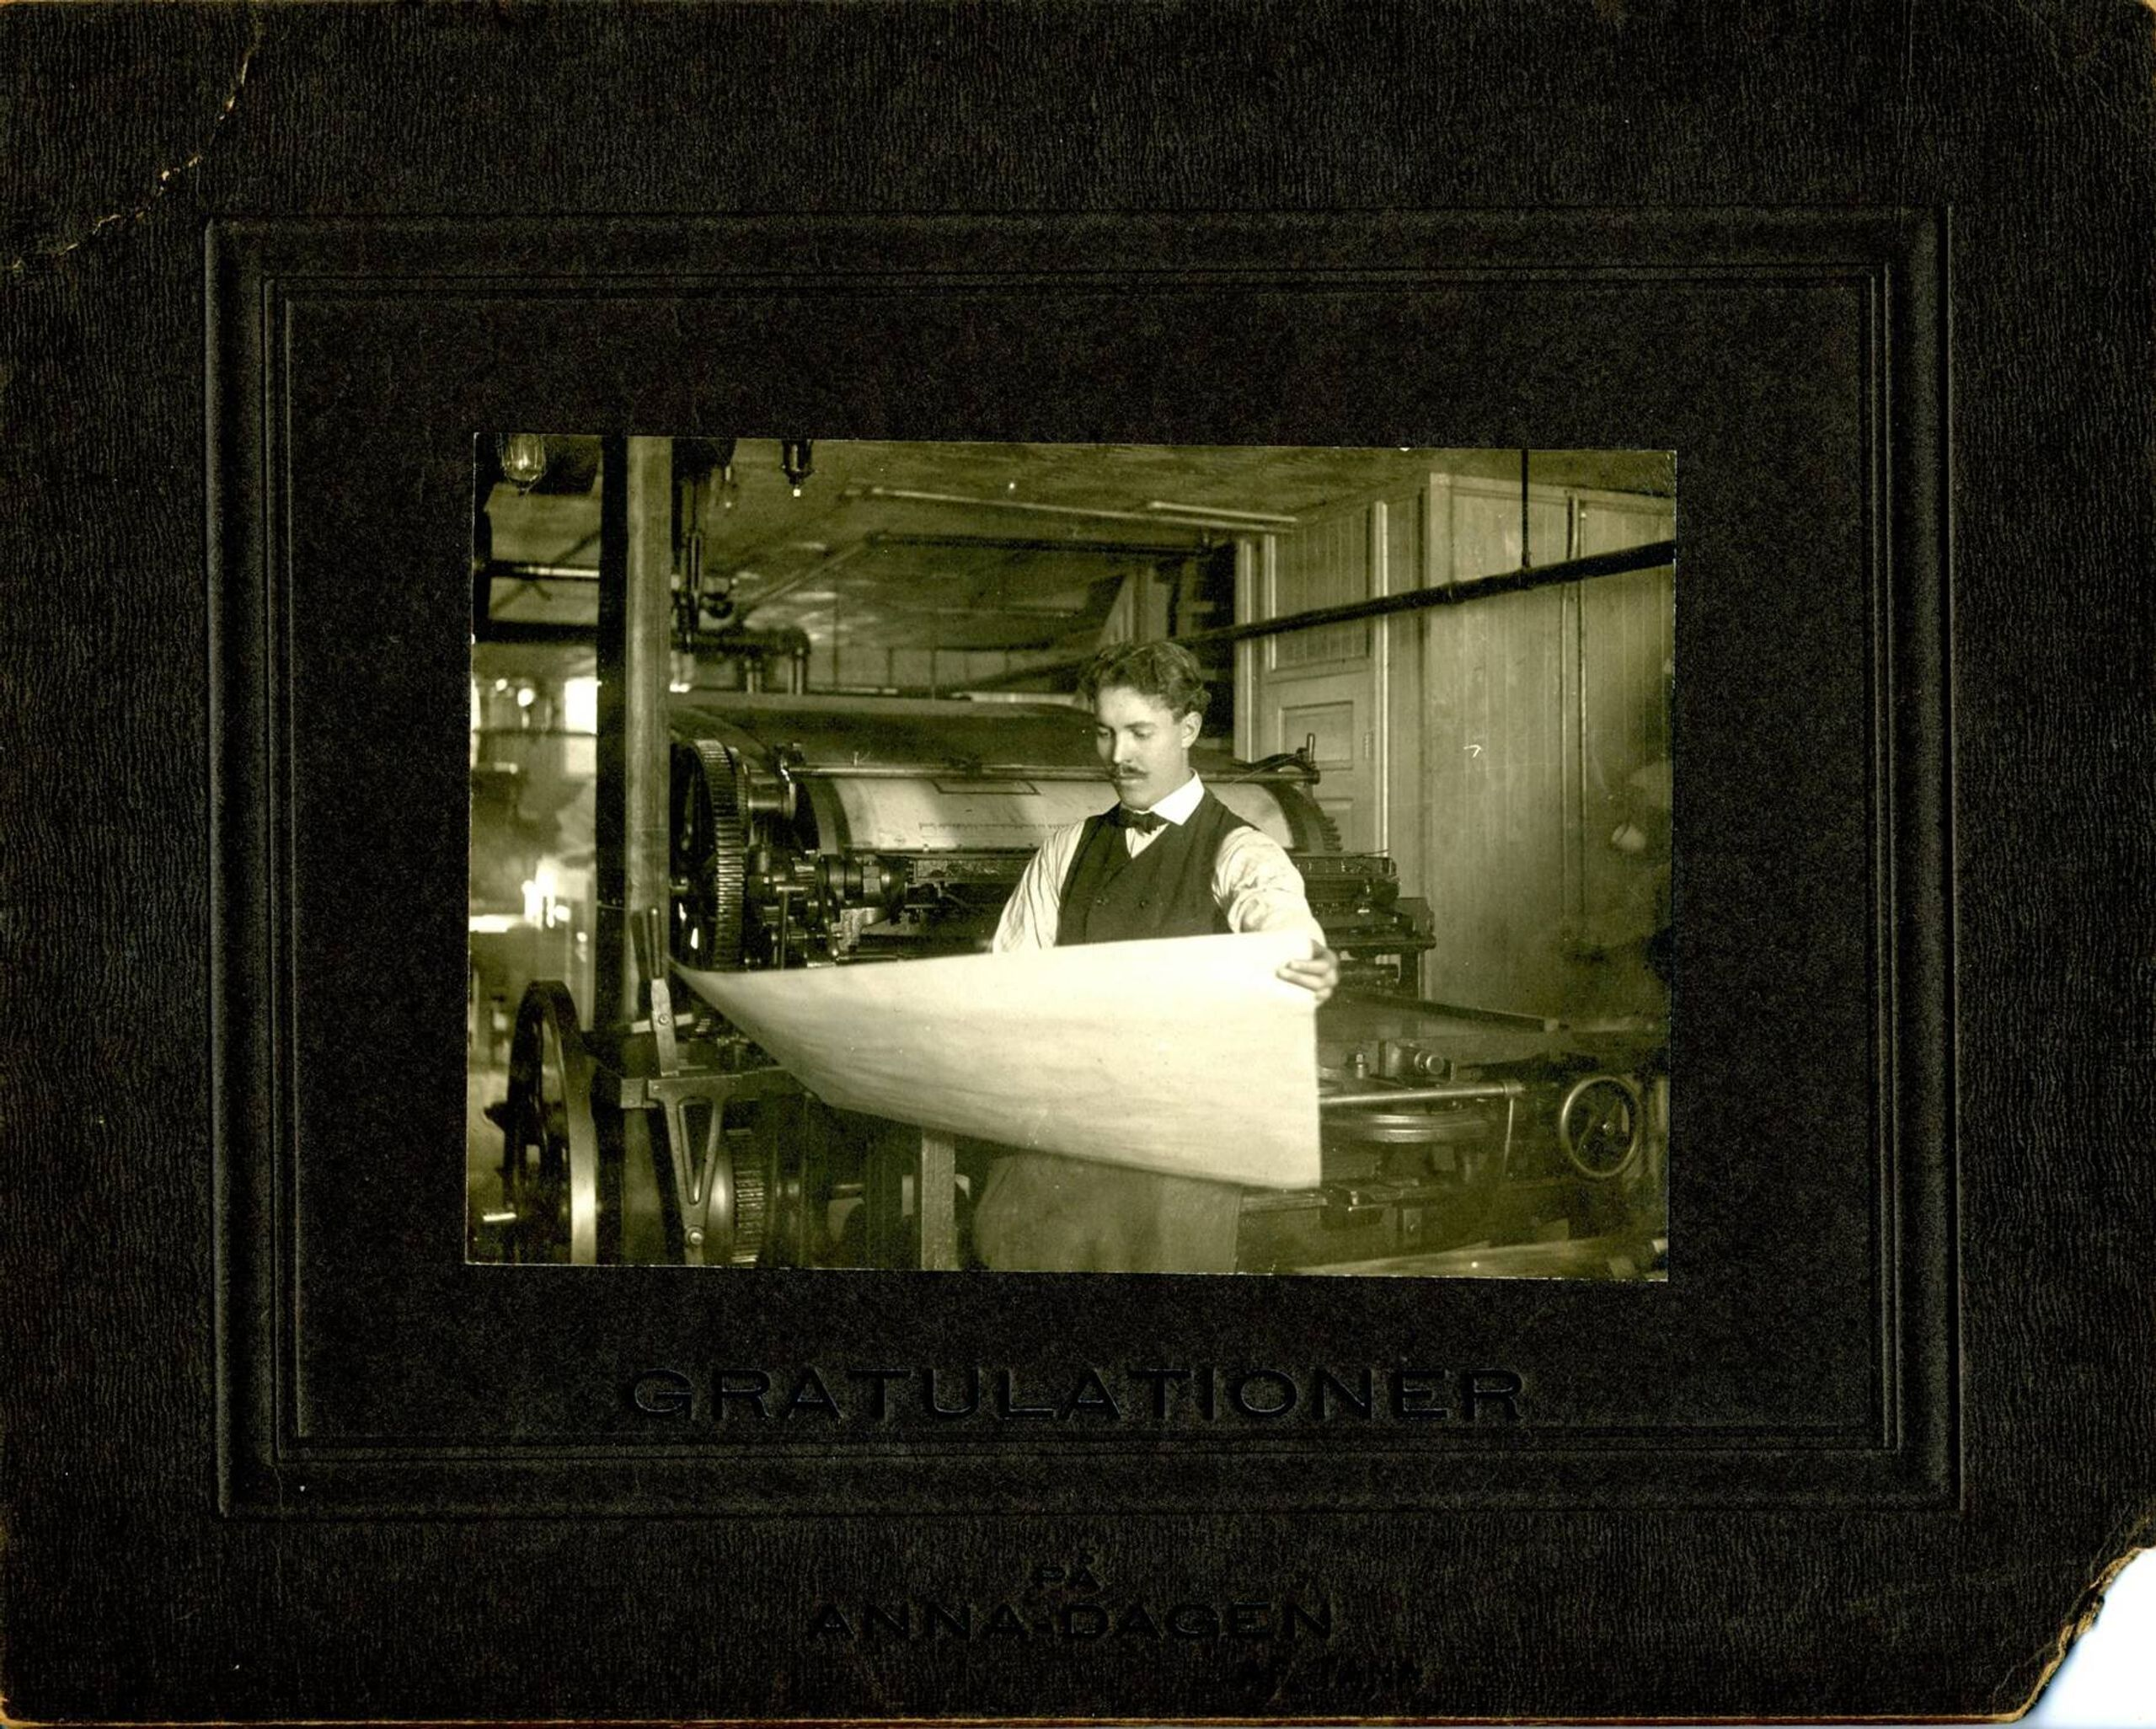 Man dressed formally standing in front of printing roll holding a piece of paper